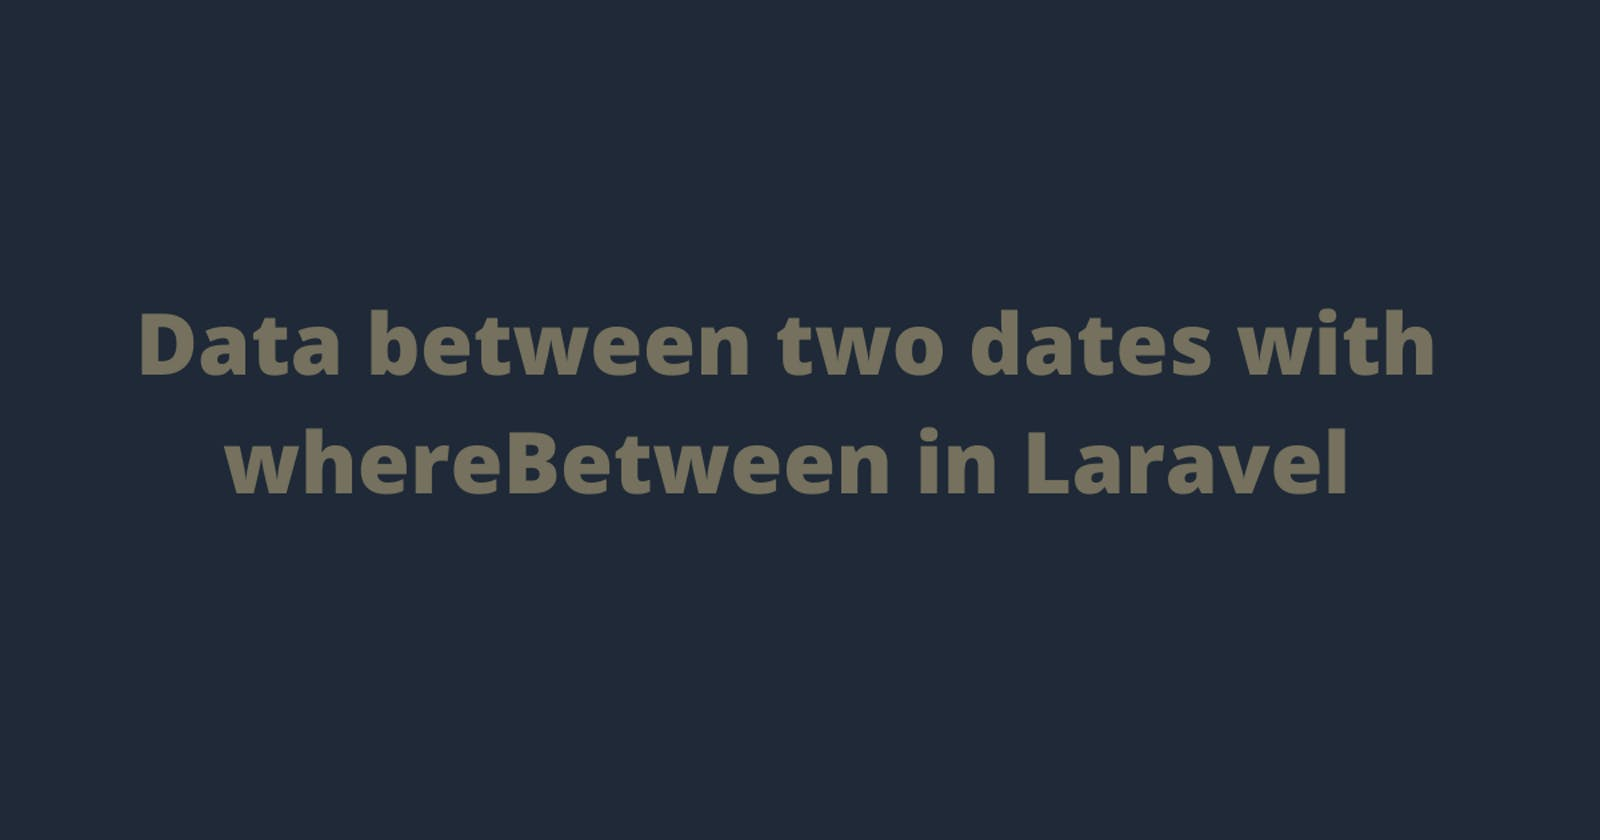 Data between two dates with whereBetween in Laravel.